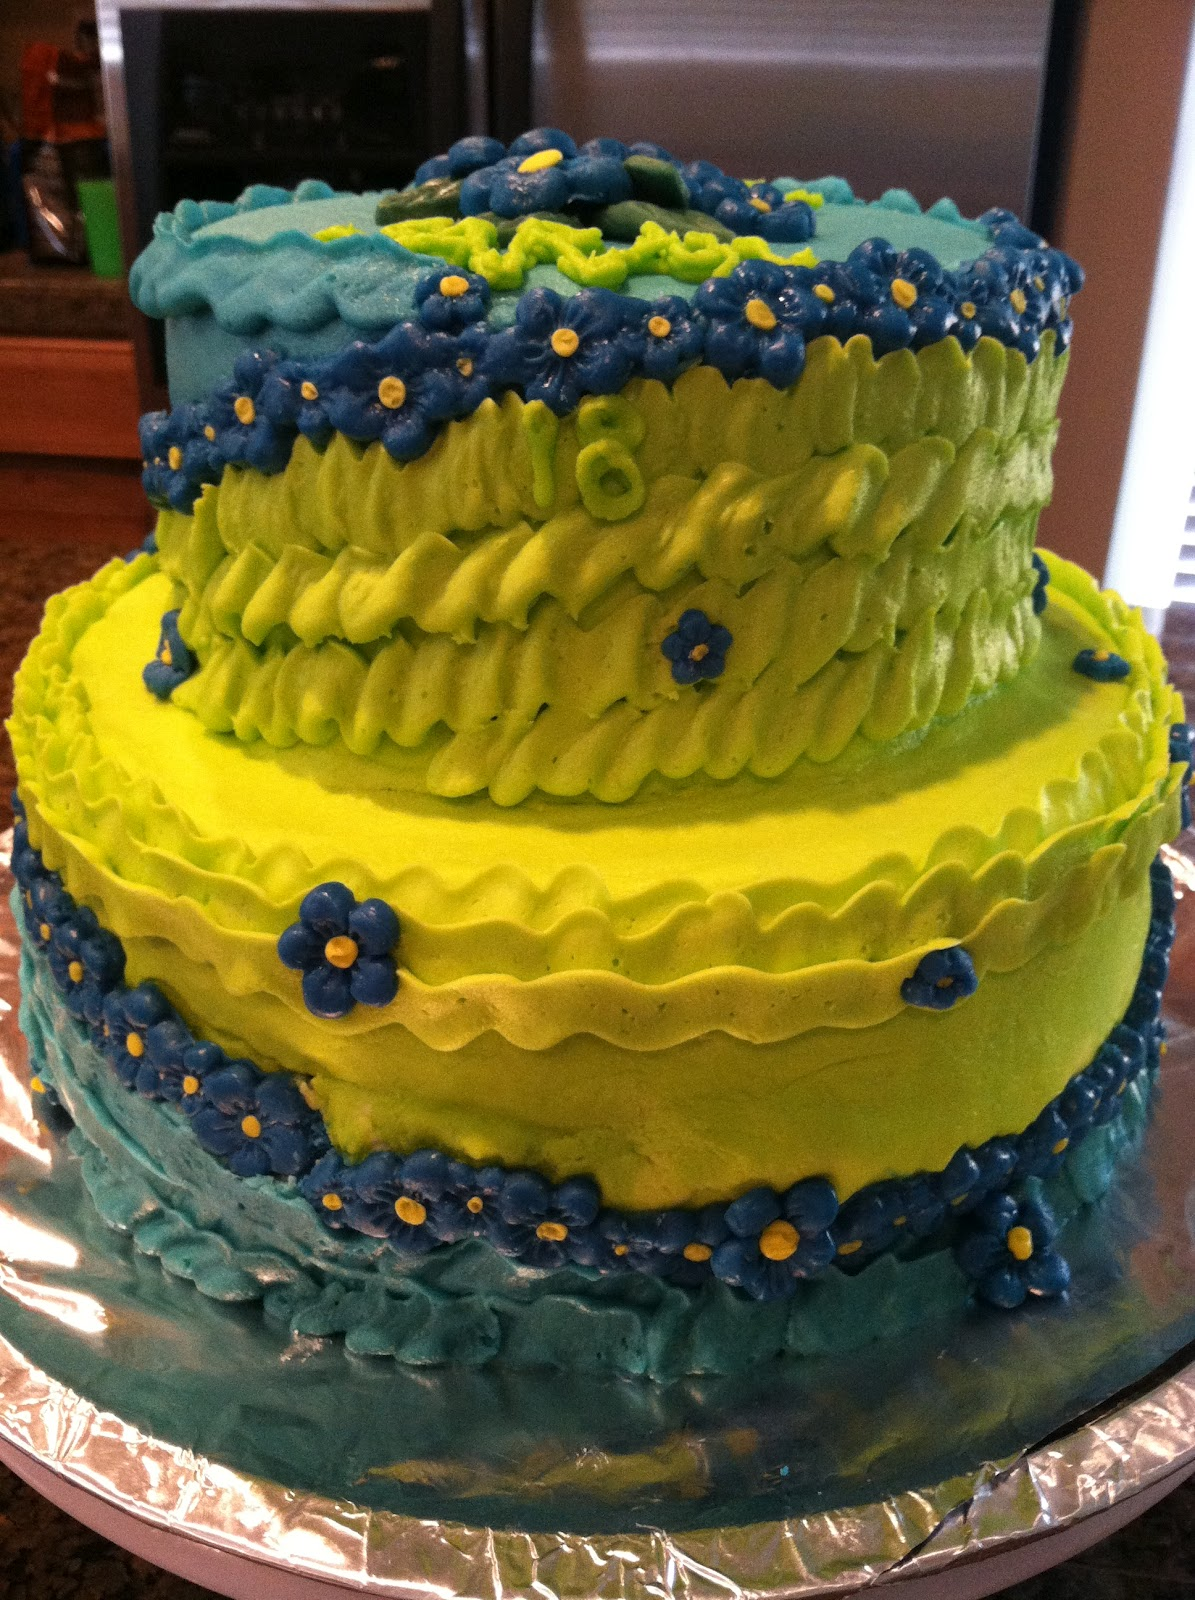 Cats Cake Creations: Pretty Blue and Green Flowered Birthday Cake